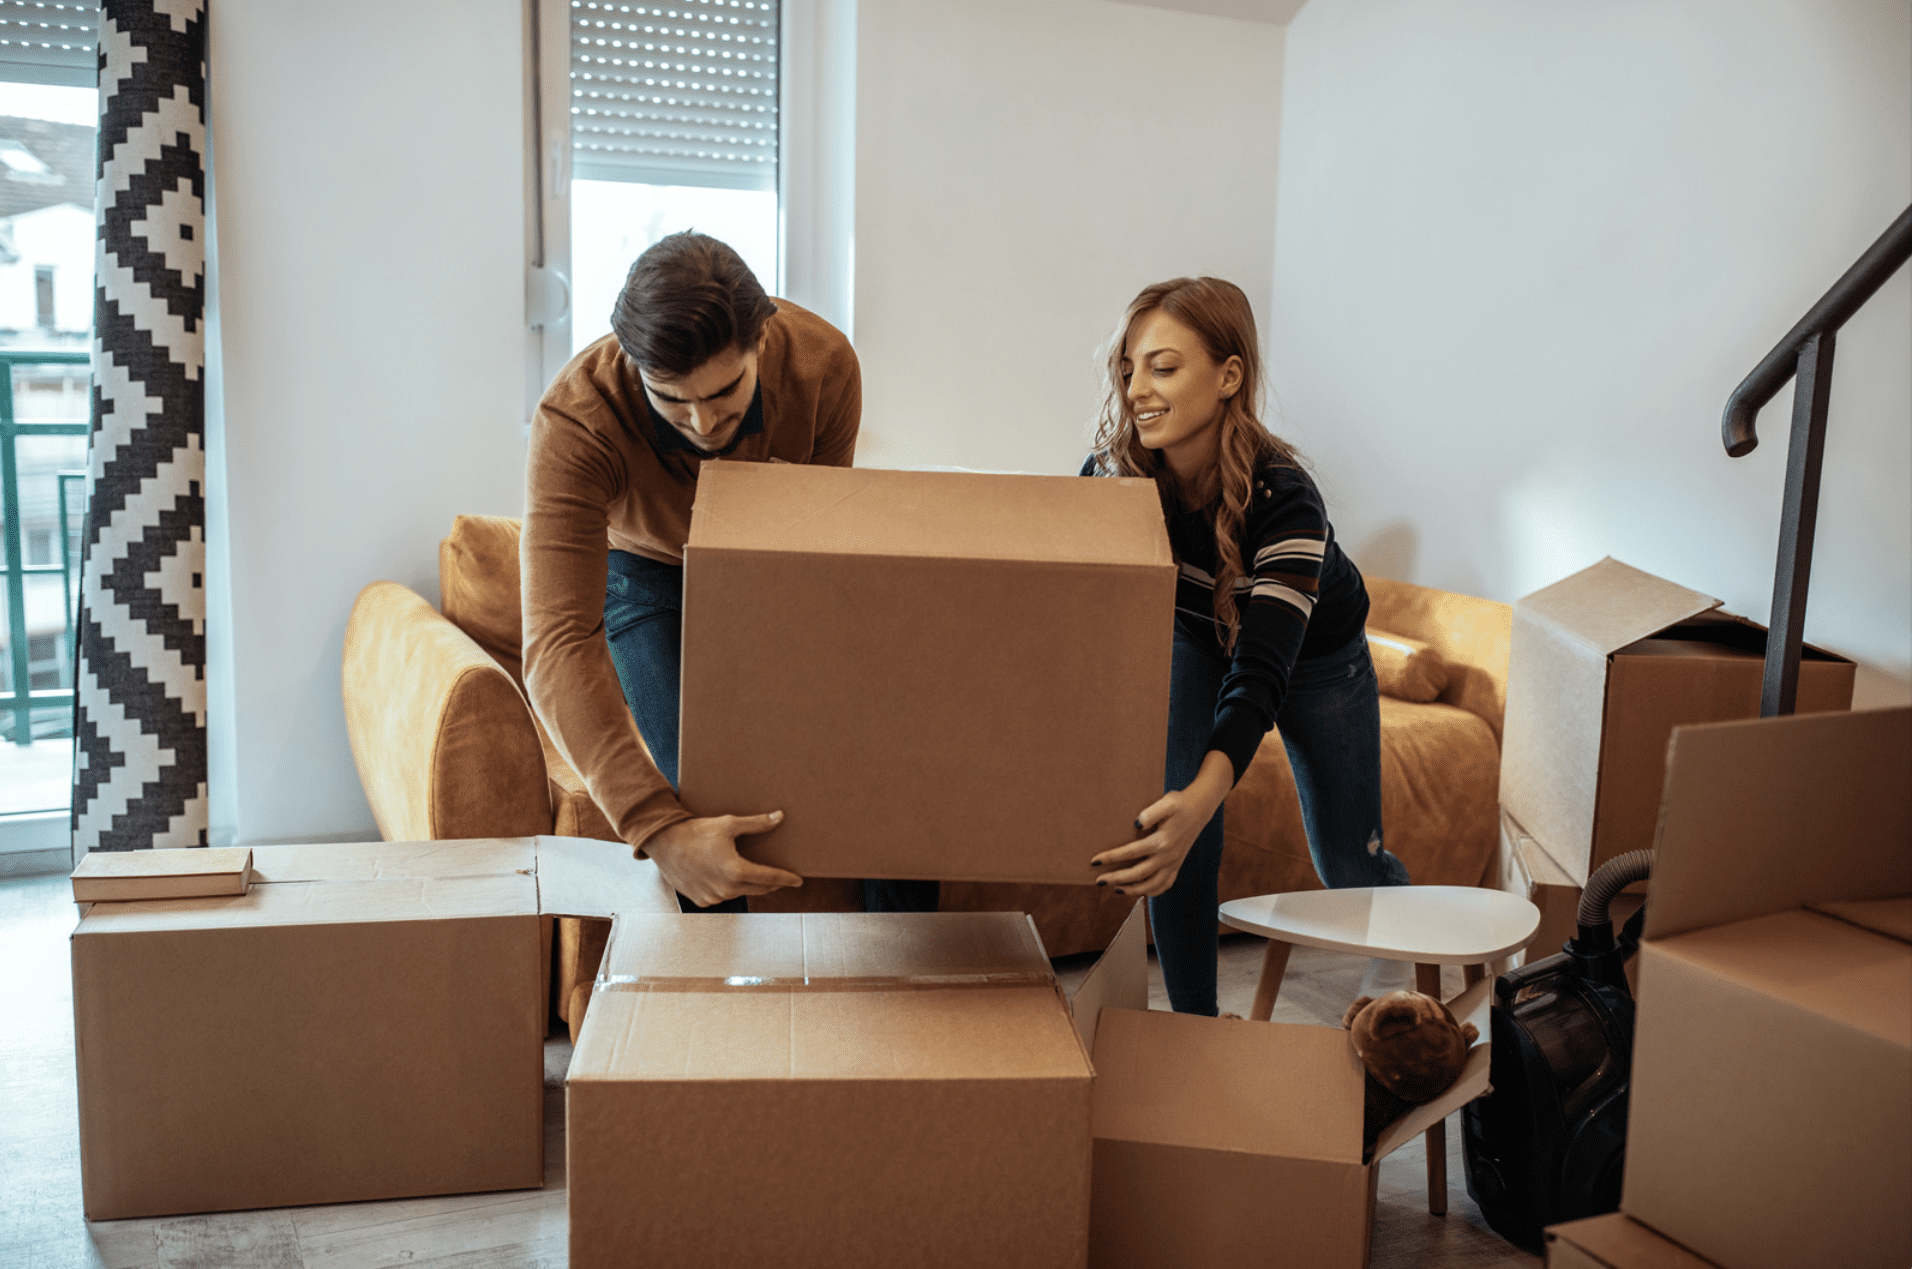 Couple lifting and stacking boxes to move